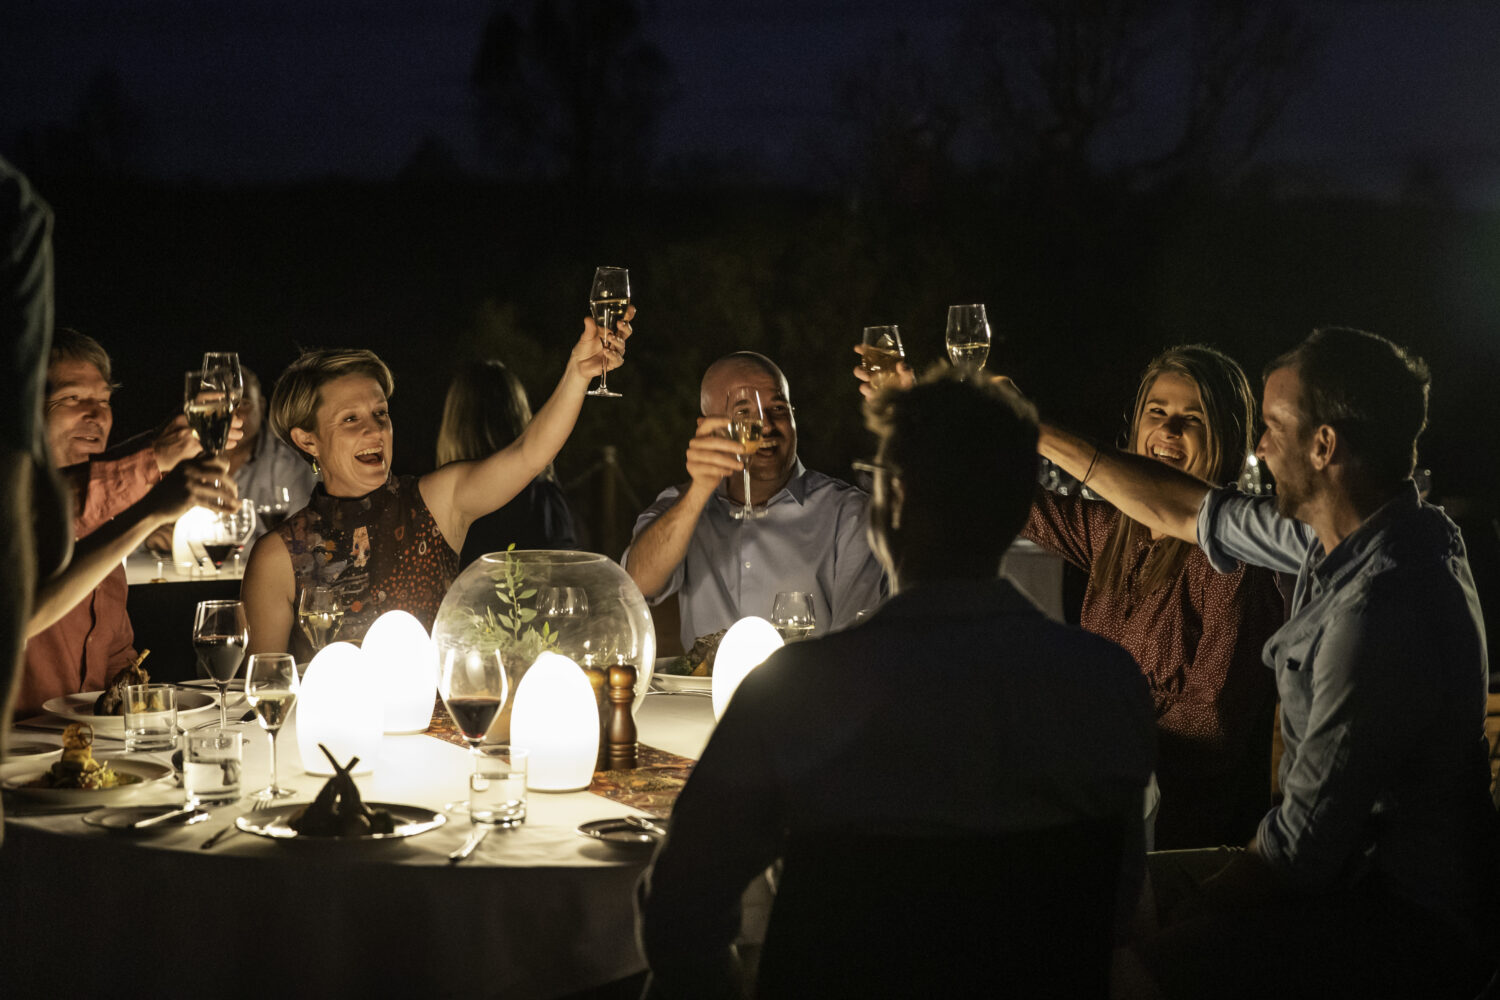 People raising glasses in a toast at dining table